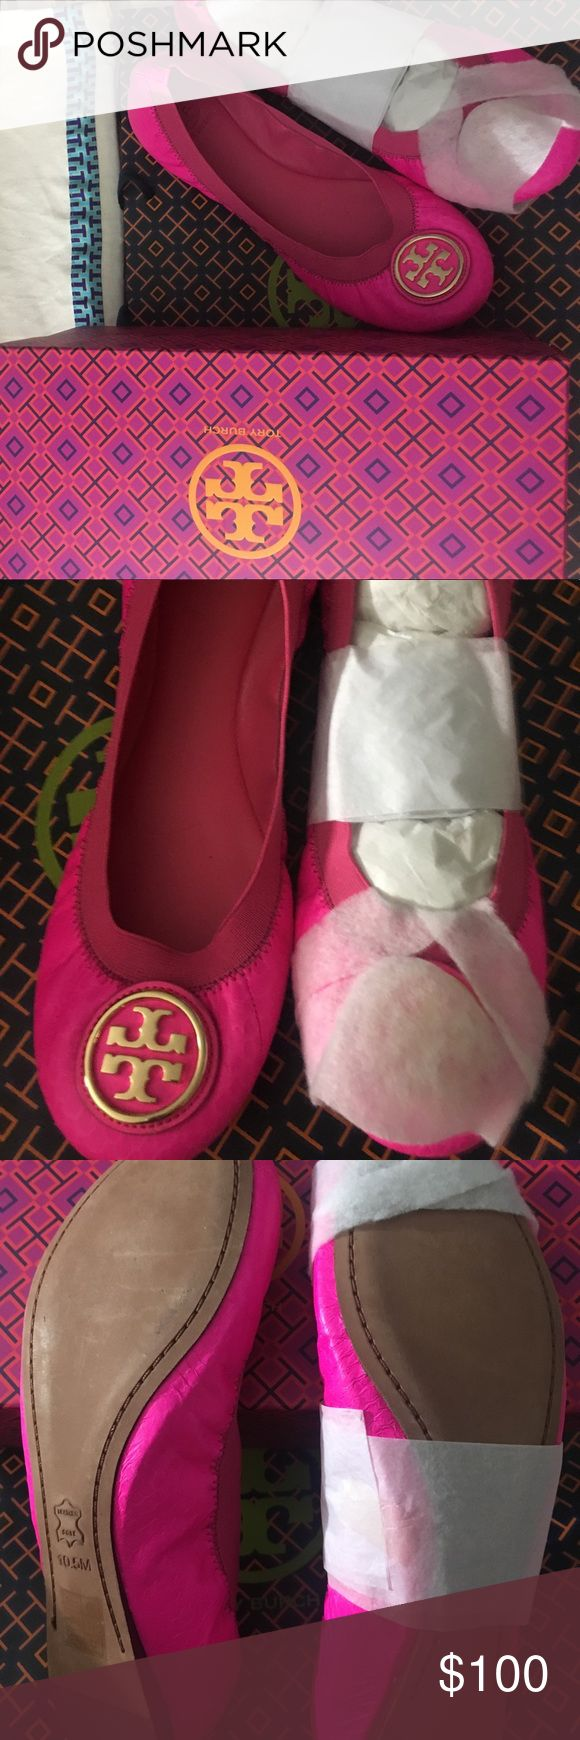 Tory Burch Caroline 2 Neon Flat Brand New in box!!!! Rare, sold-out Neon Pink perfect for a stylish Spring and Summer!!! Elastic band and gold-tone logo on toe.  Comes with box and travel bag Tory Burch Shoes Flats & Loafers